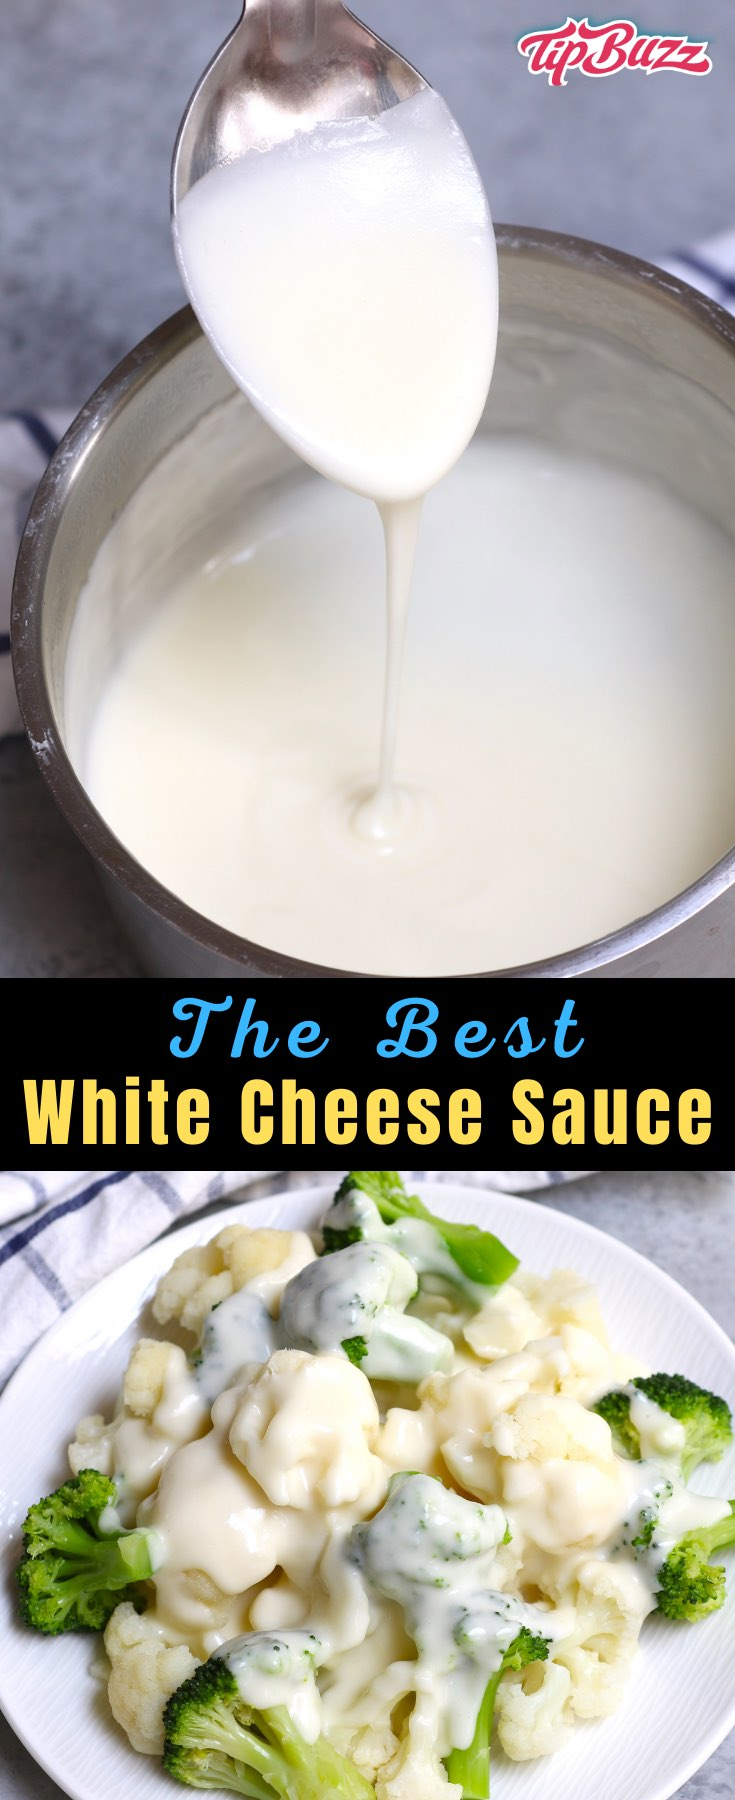 This White Cheese Sauce is creamy and smooth, perfect for drizzling onto vegetables or serving as a hot dip. It's easy to make with just 4 ingredients! #cheesesauce